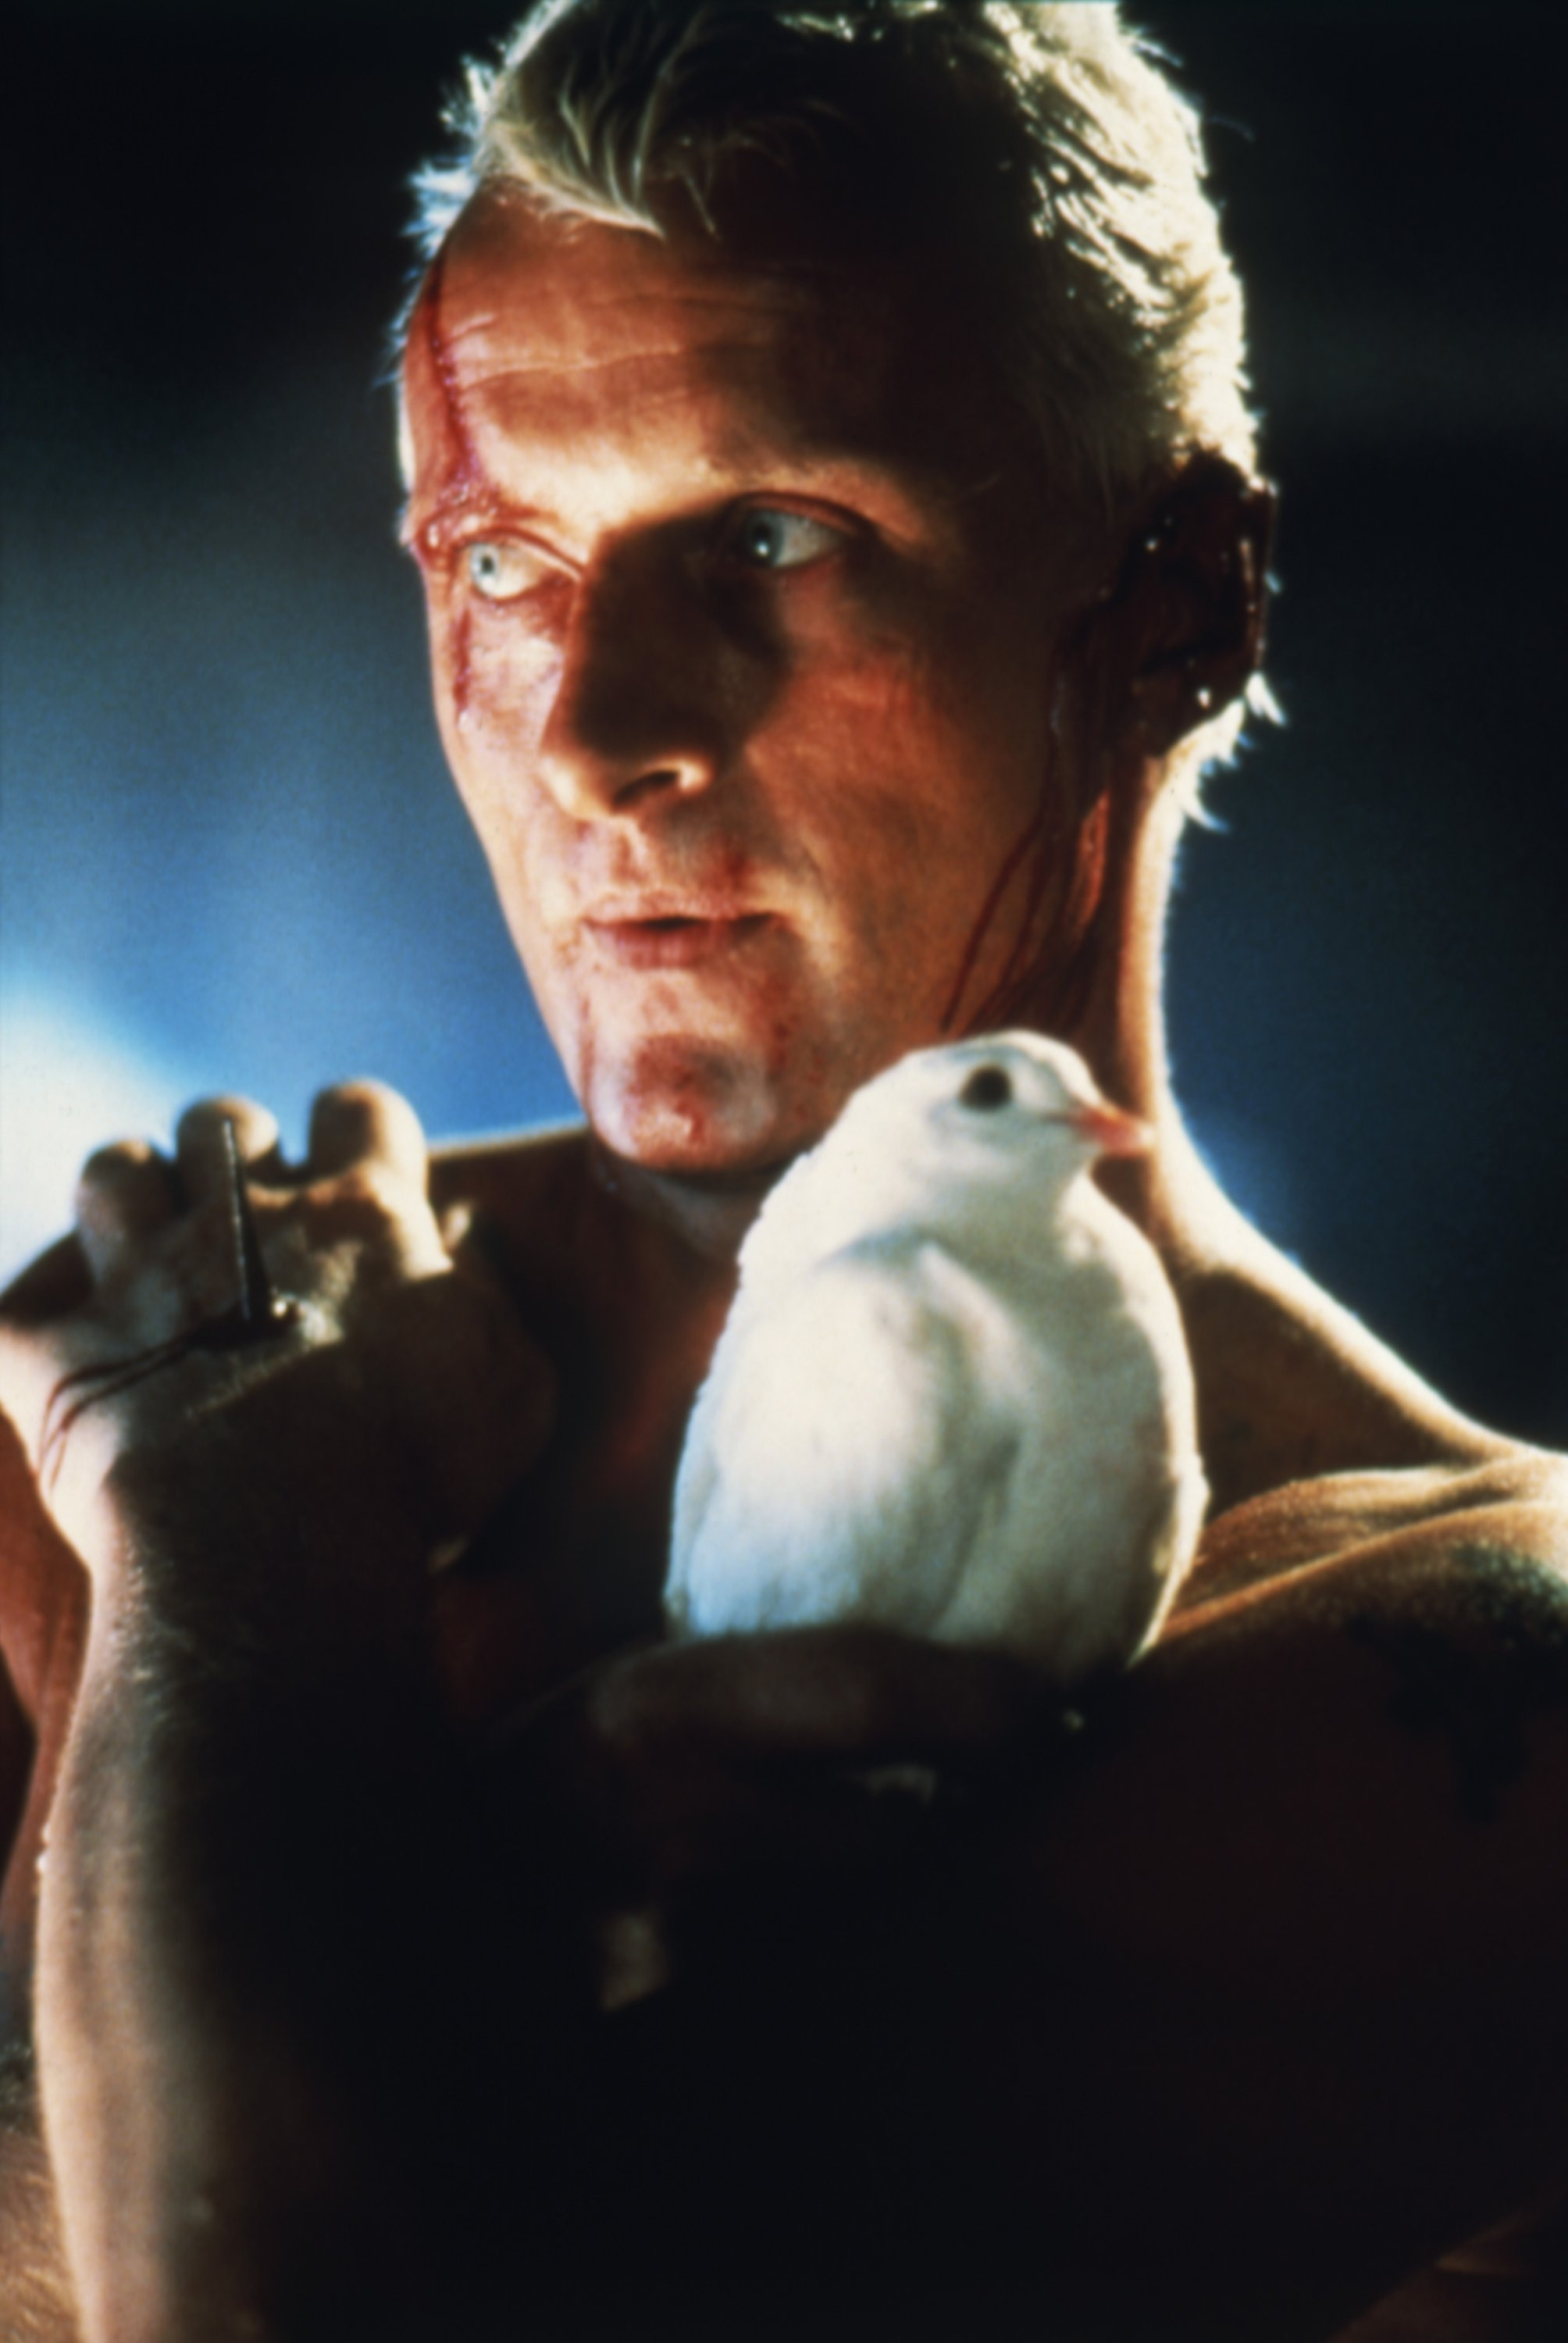 Rutger Hauer on the set of 'Blade Runner', directed by Ridley Scott. (Corbis via Getty Images)